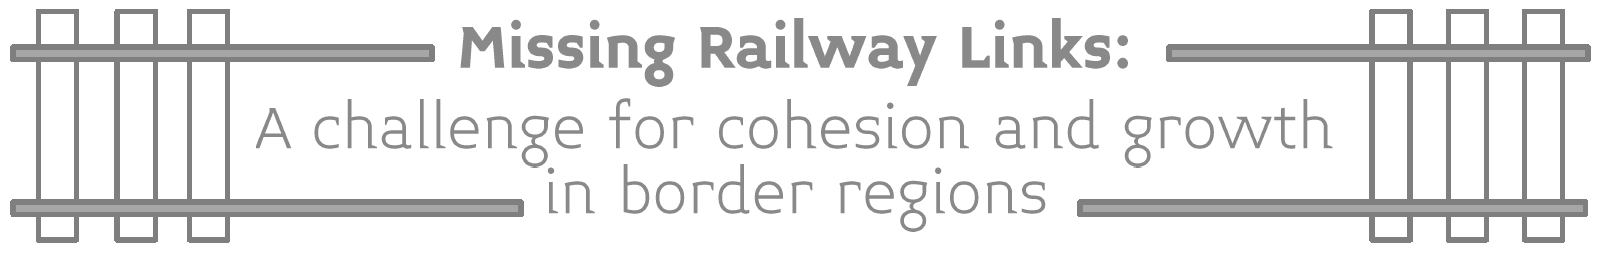 Missing Railway Links